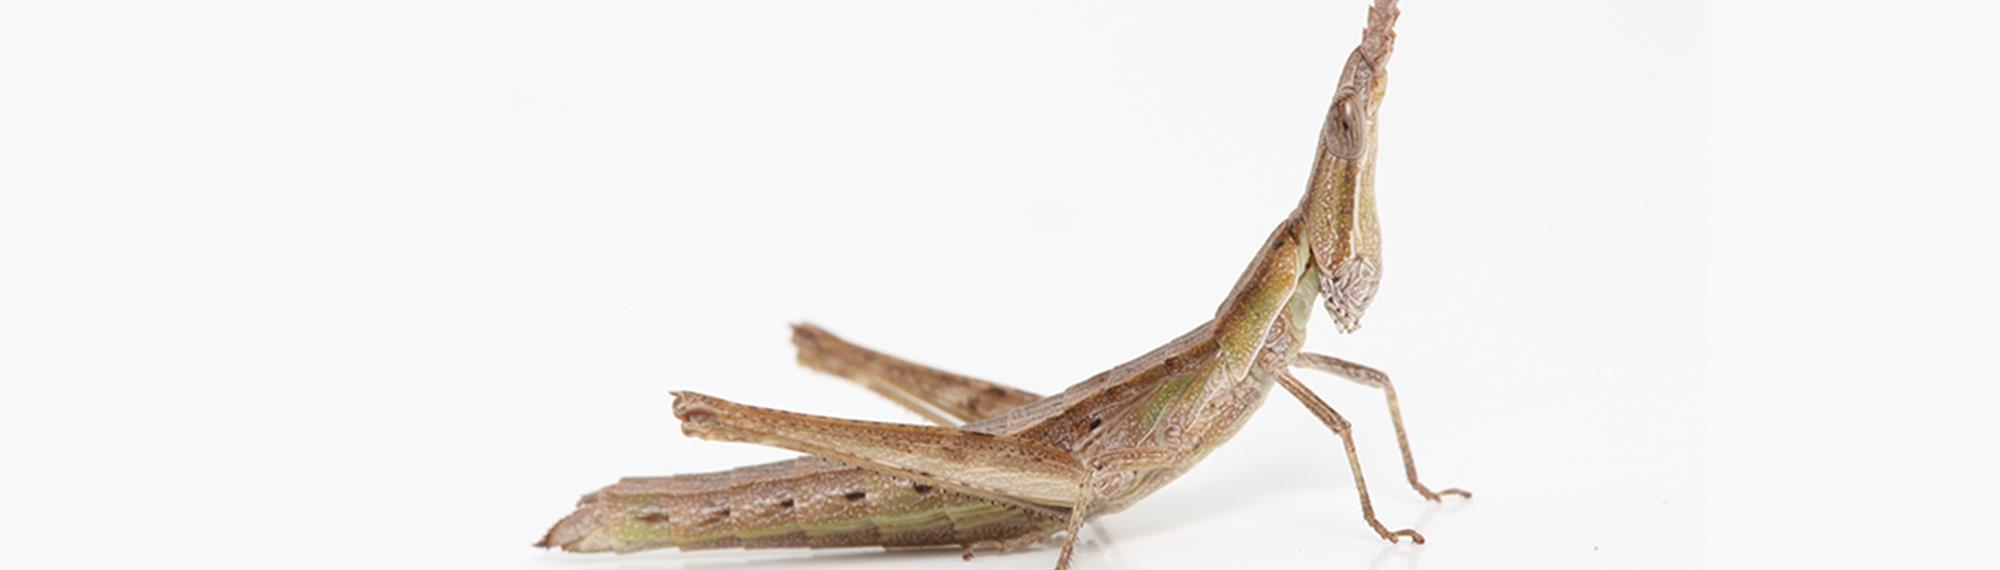 Key's Matchstick Grasshopper. Its brown with a pointed head.